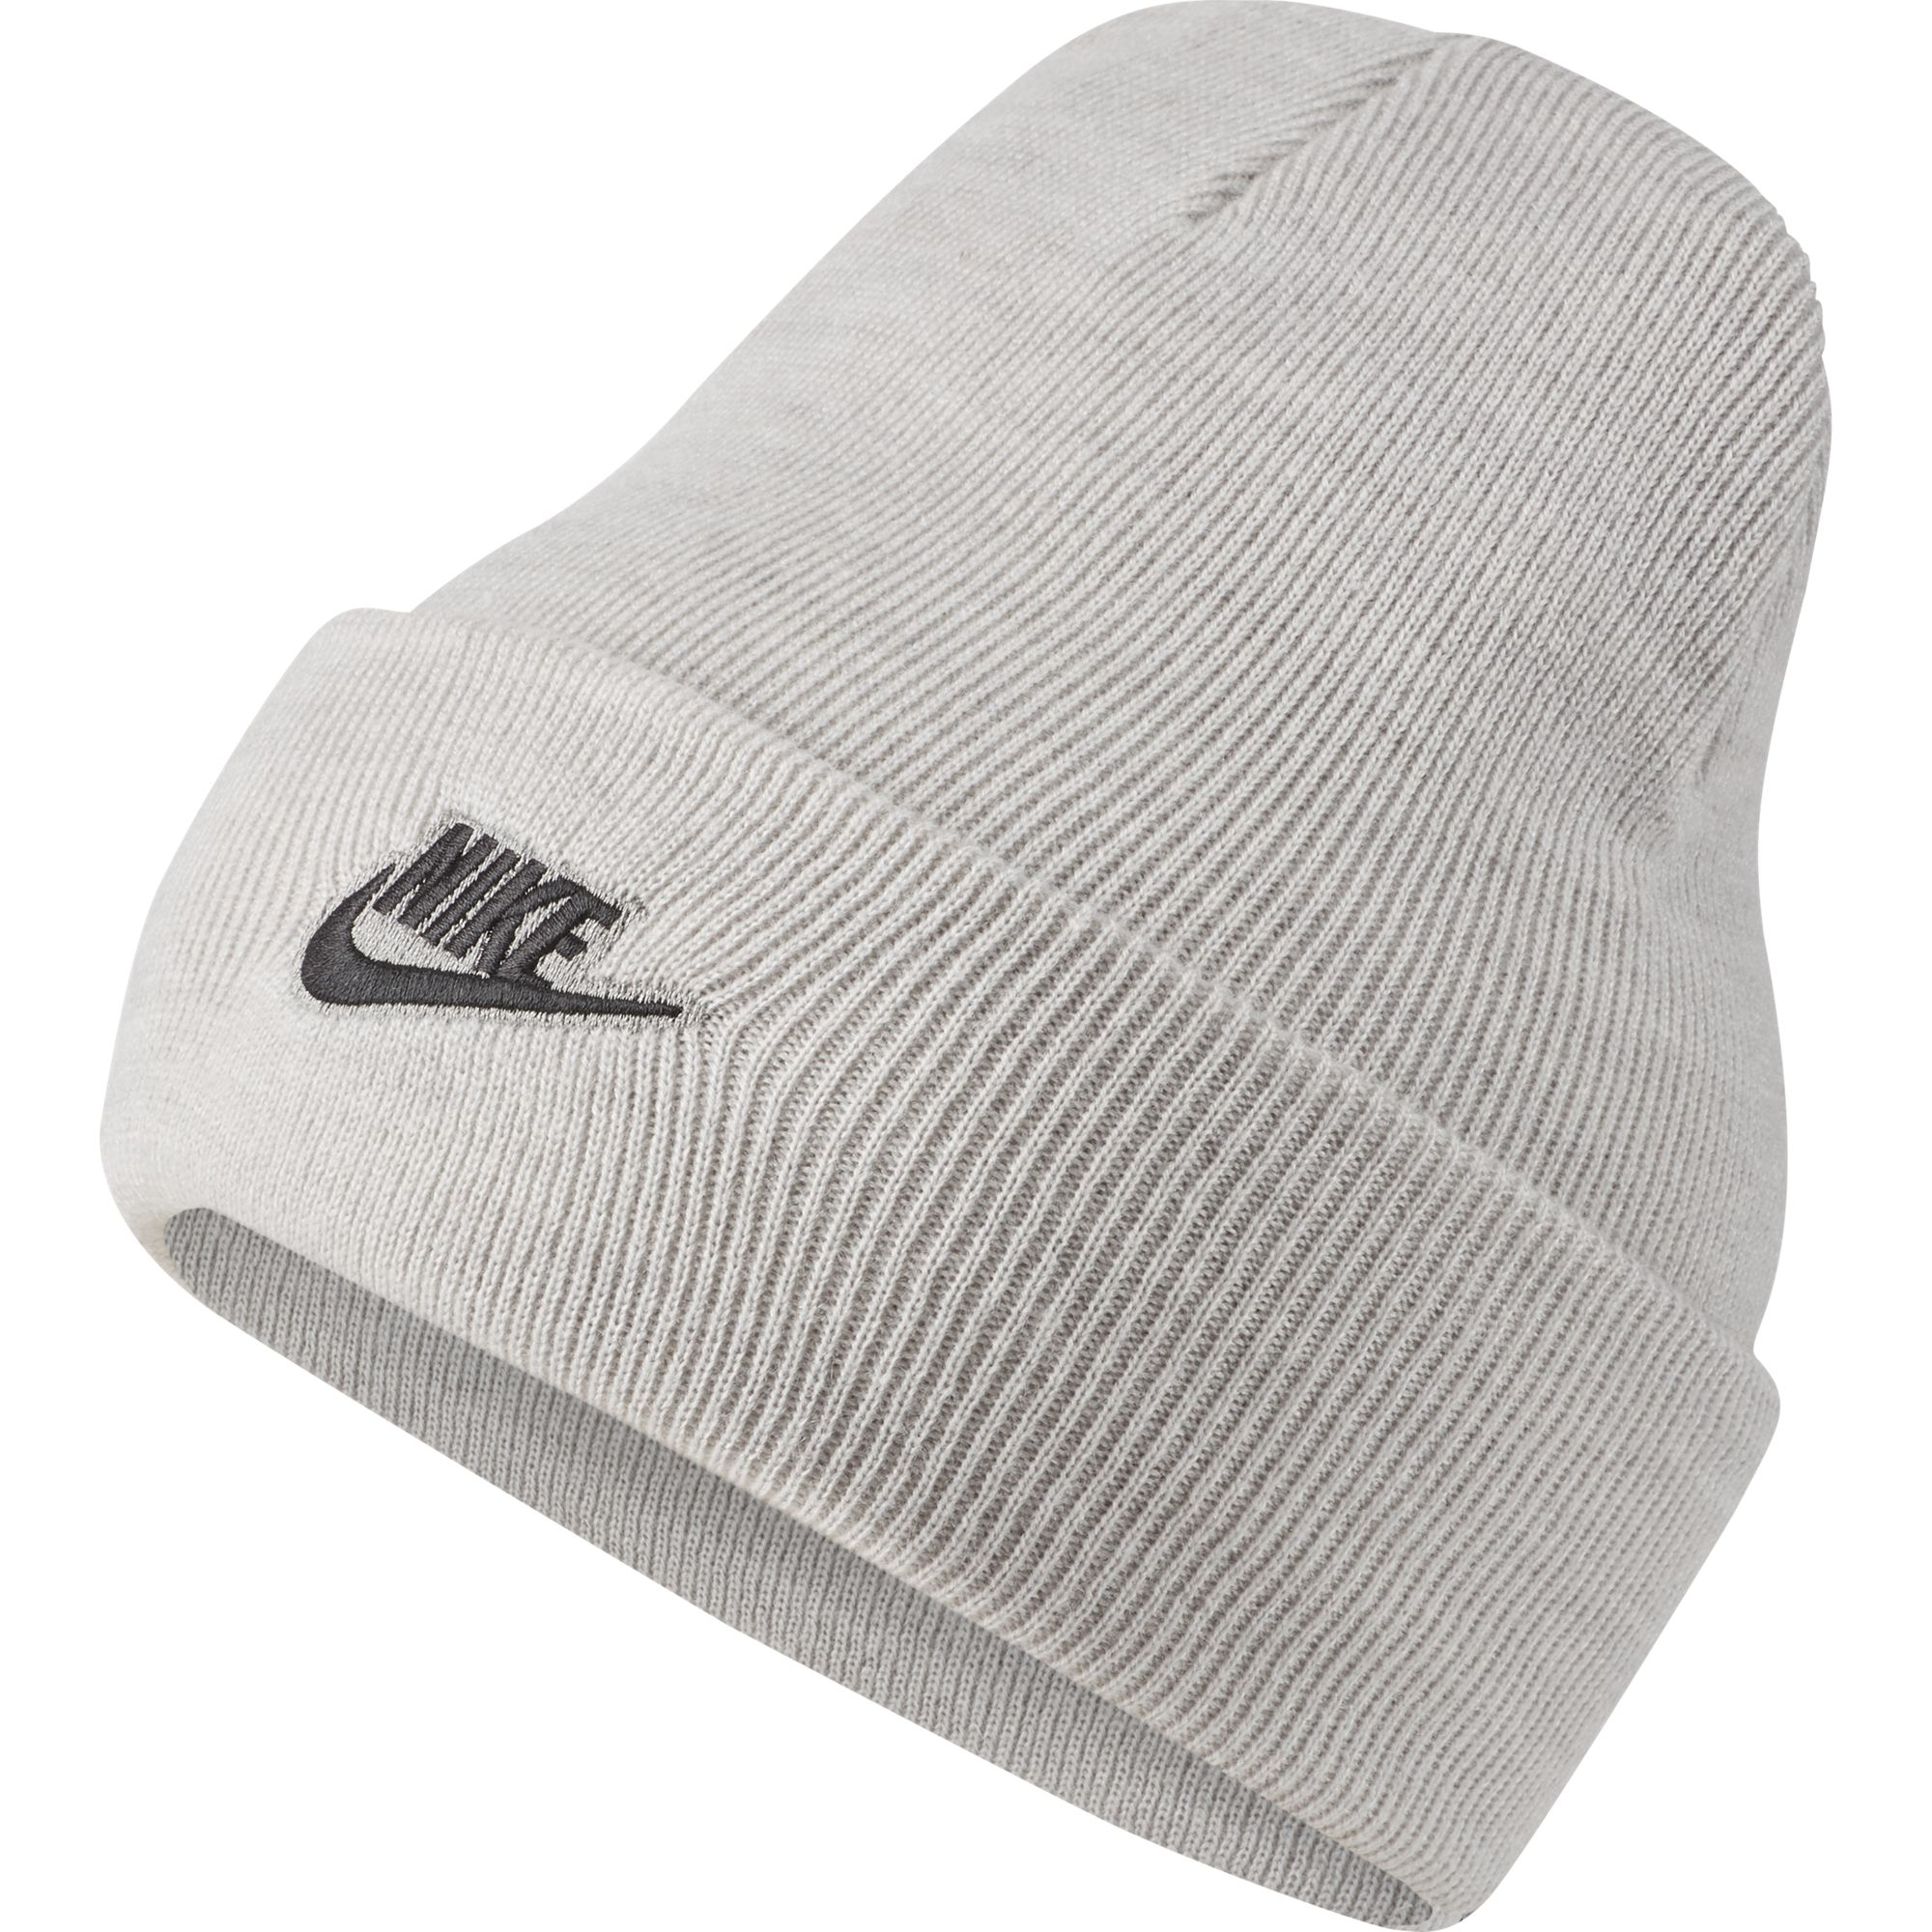 Men's Cuffed Beanie Utility Ski Hat, Heather Gray, swatch